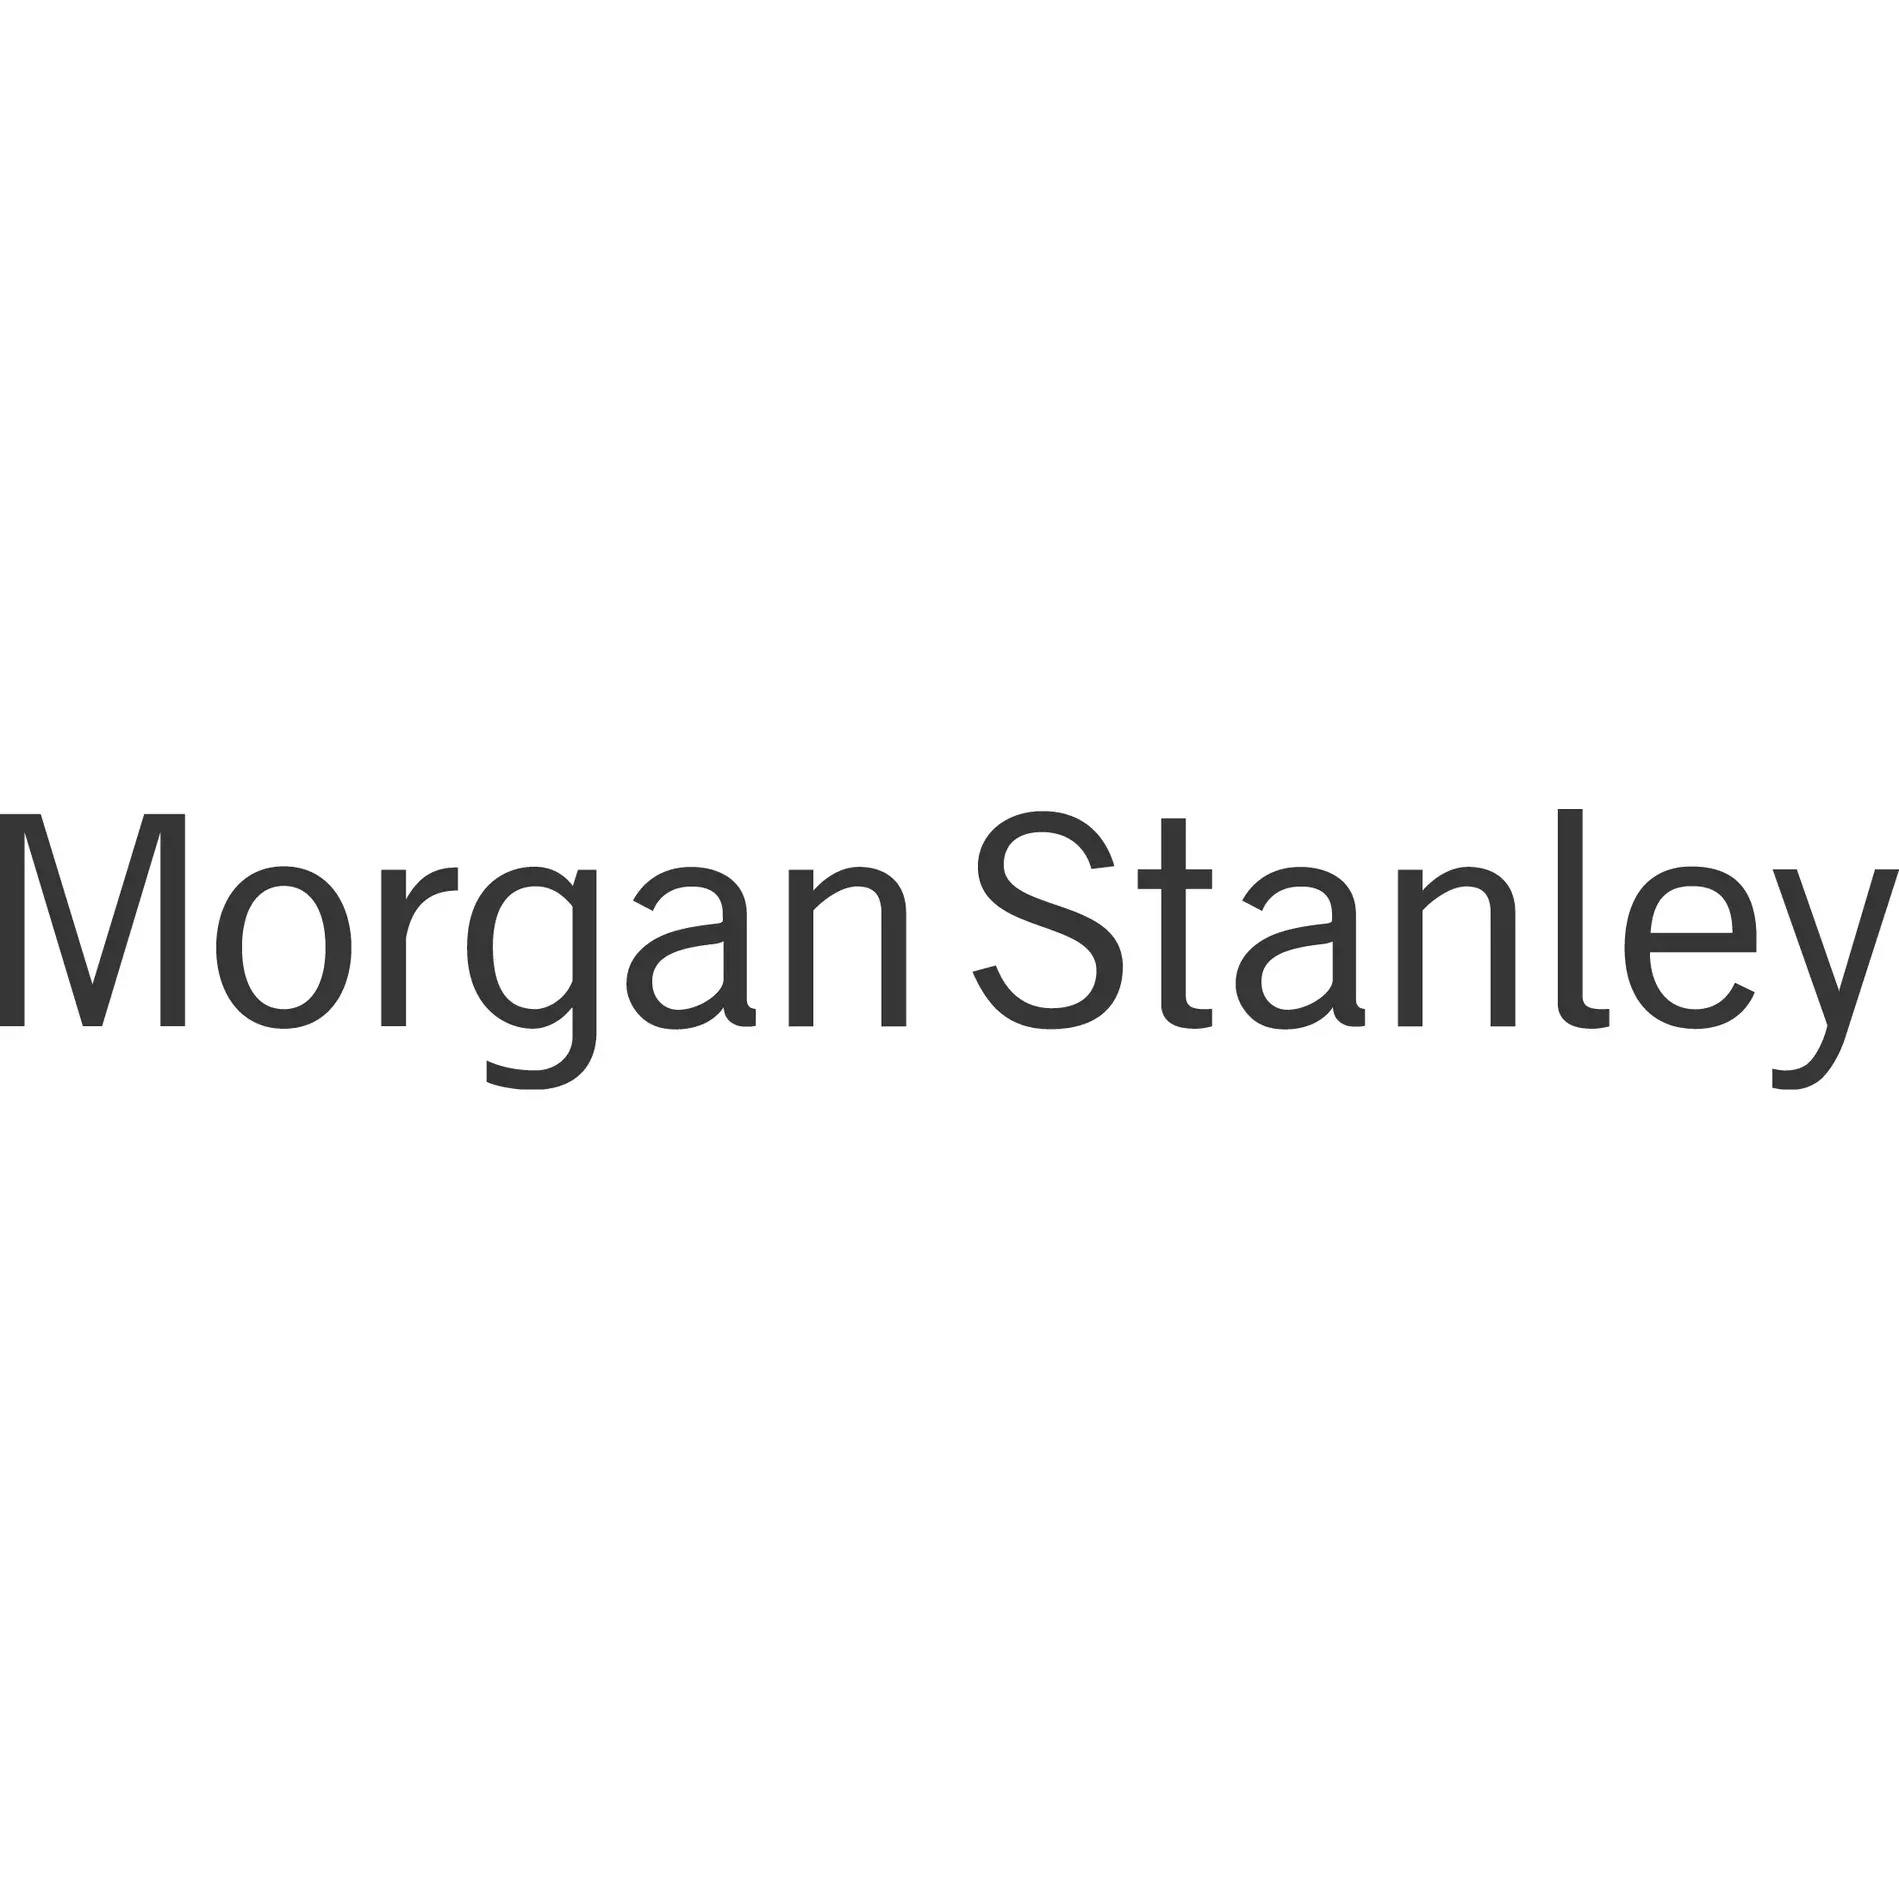 The Sweeney Group - Morgan Stanley